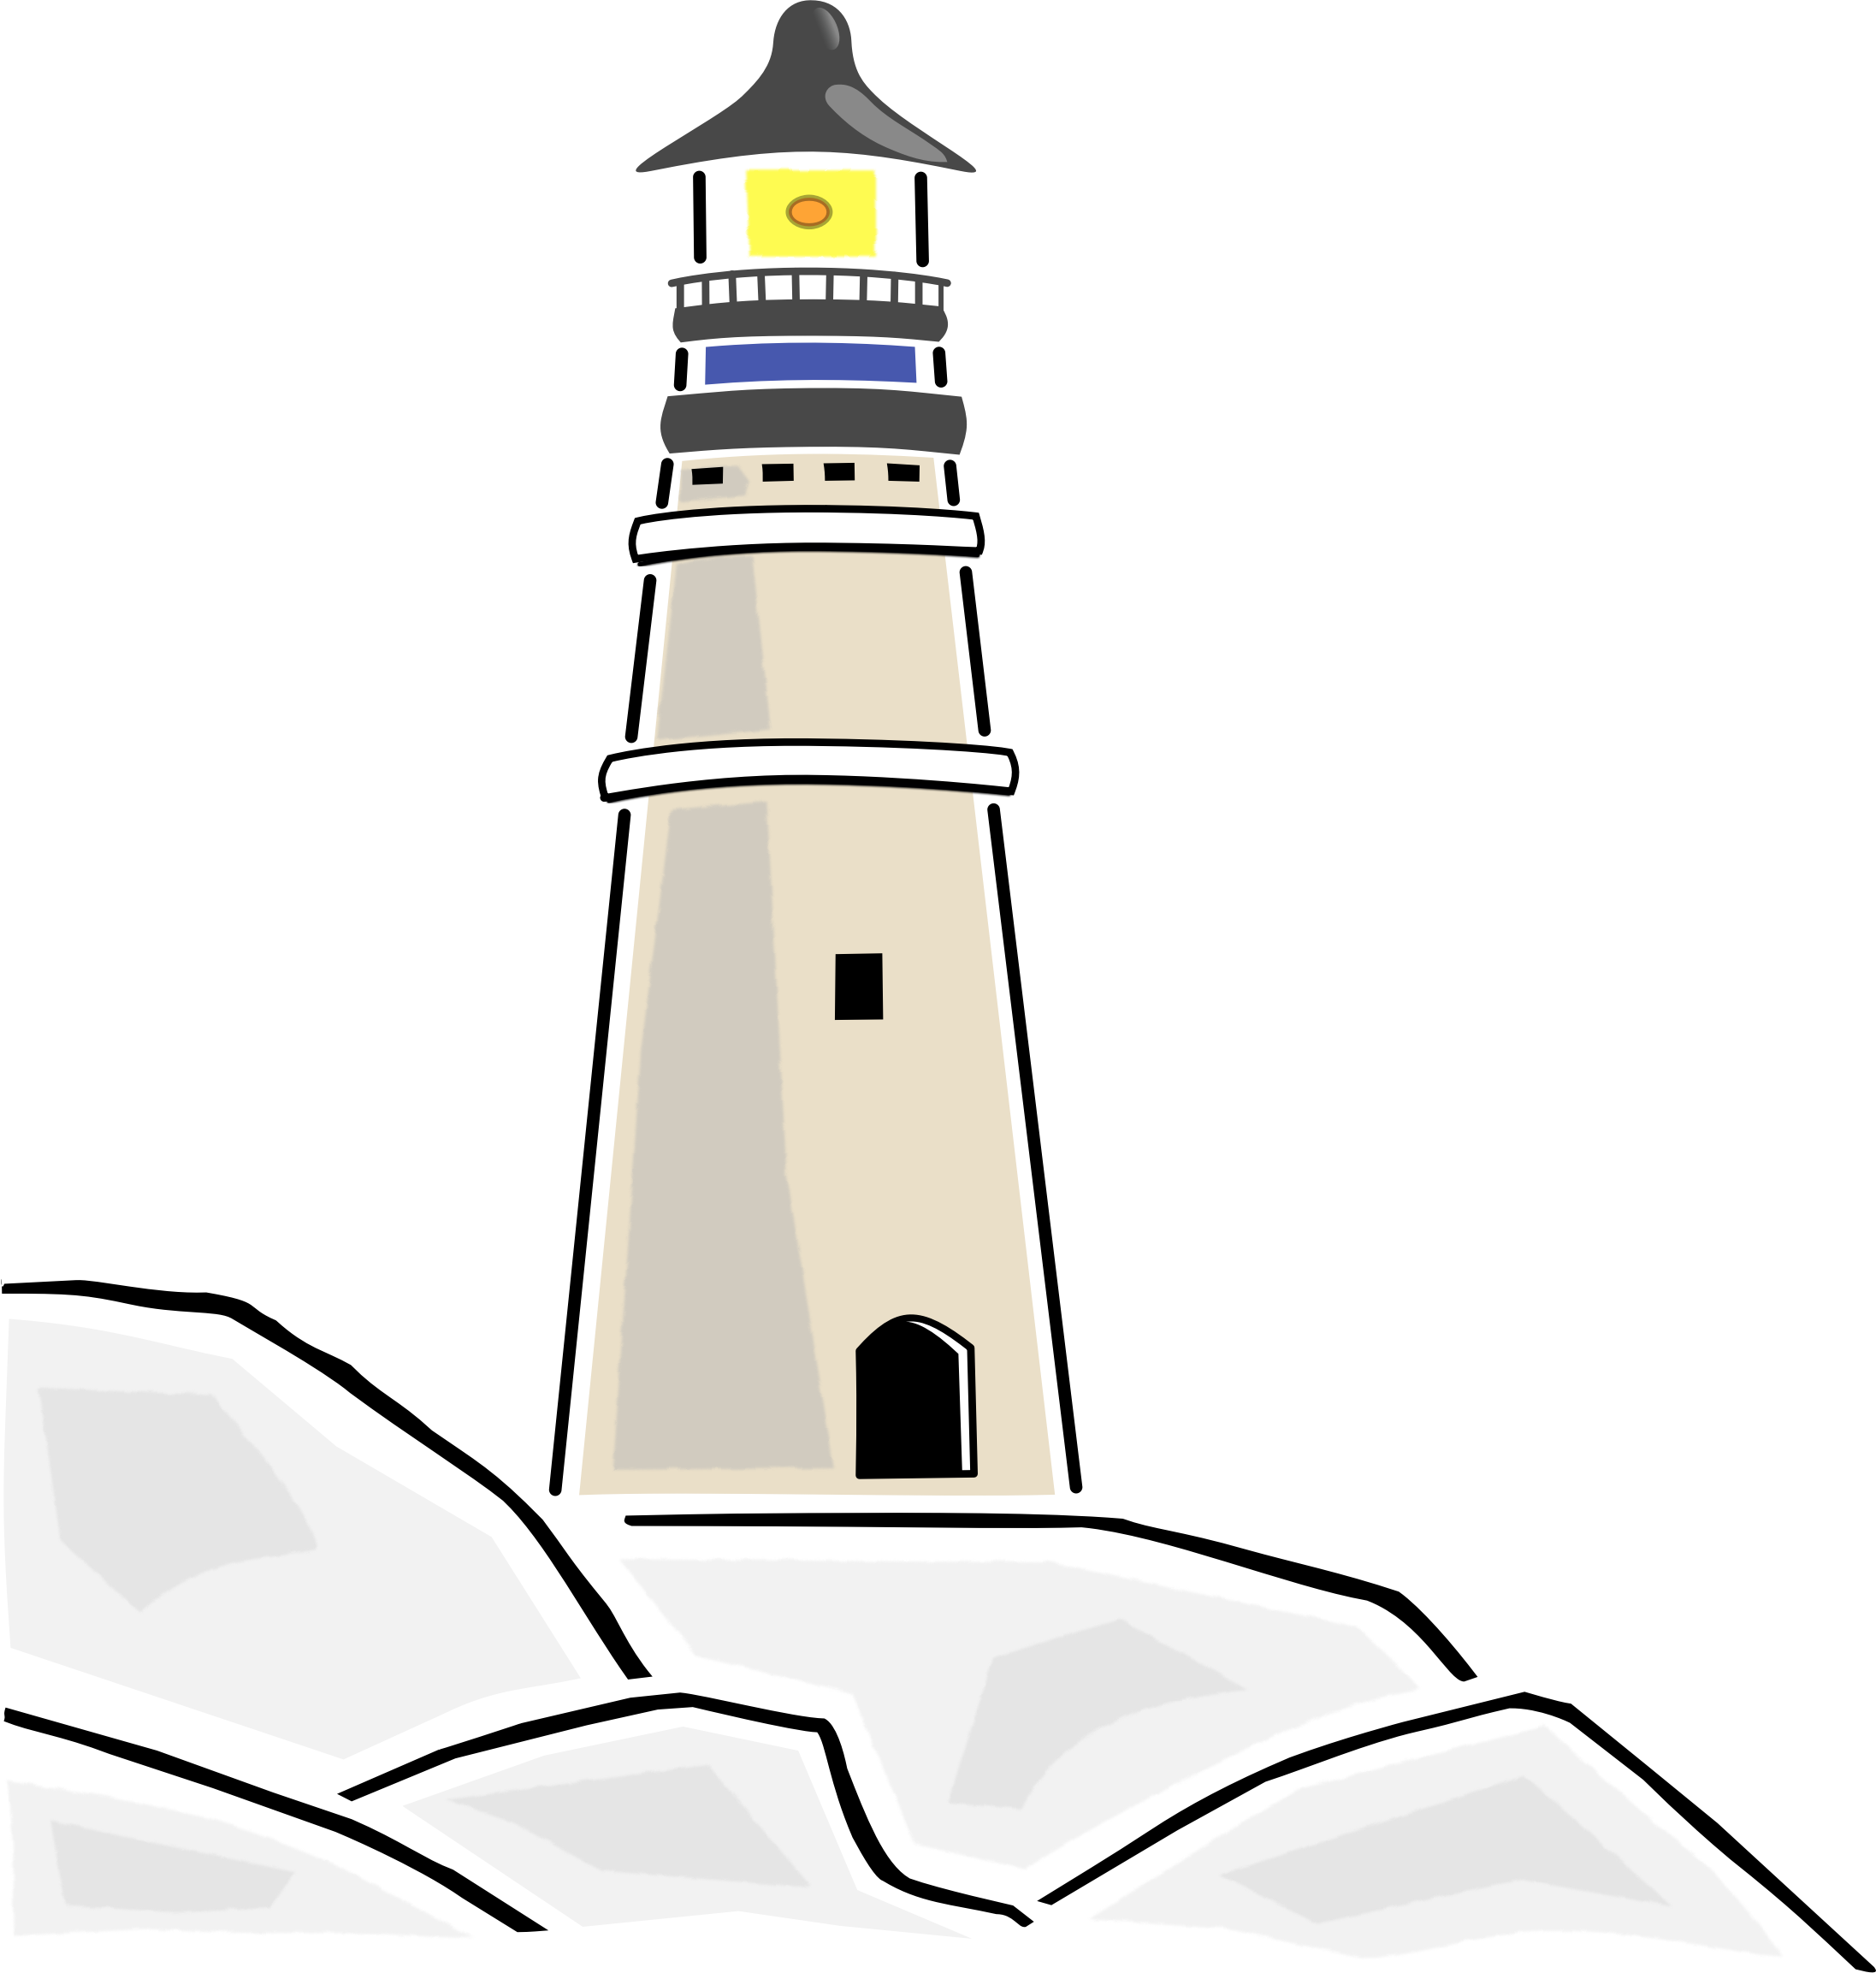 Clipart lighthiuse graphic freeuse Free Lighthouse Cliparts, Download Free Clip Art, Free Clip Art on ... graphic freeuse